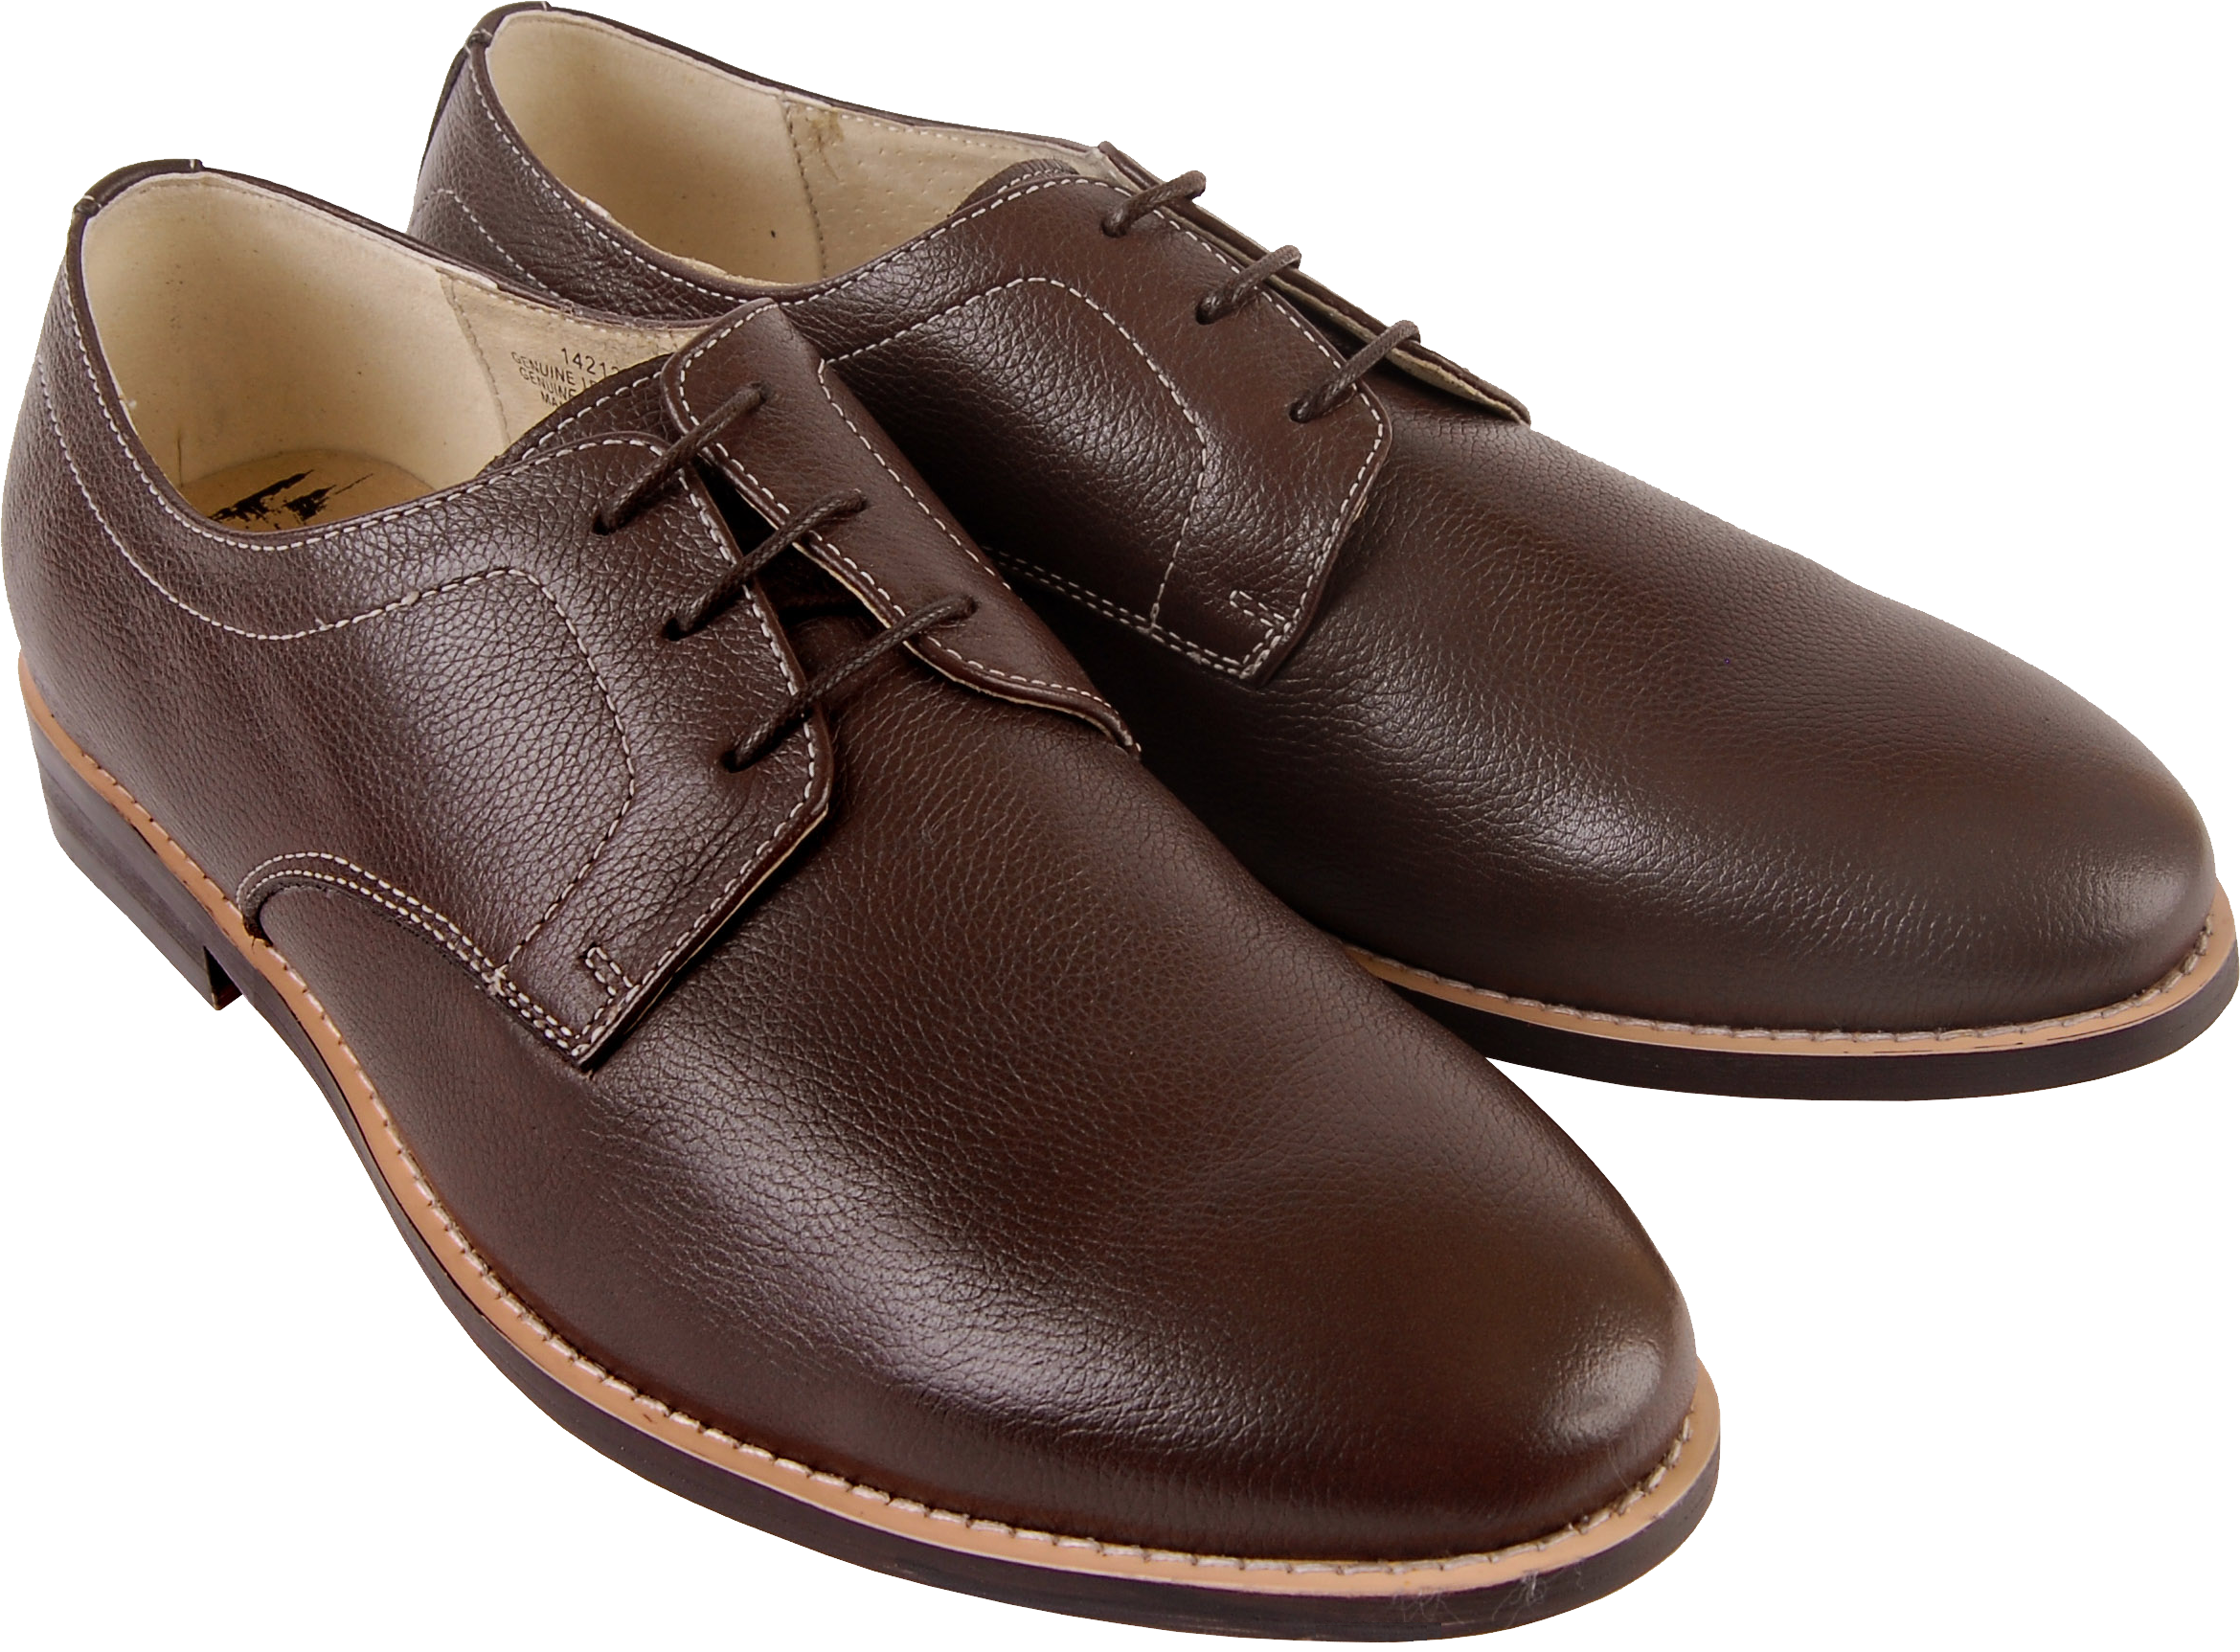 black men shoes png images